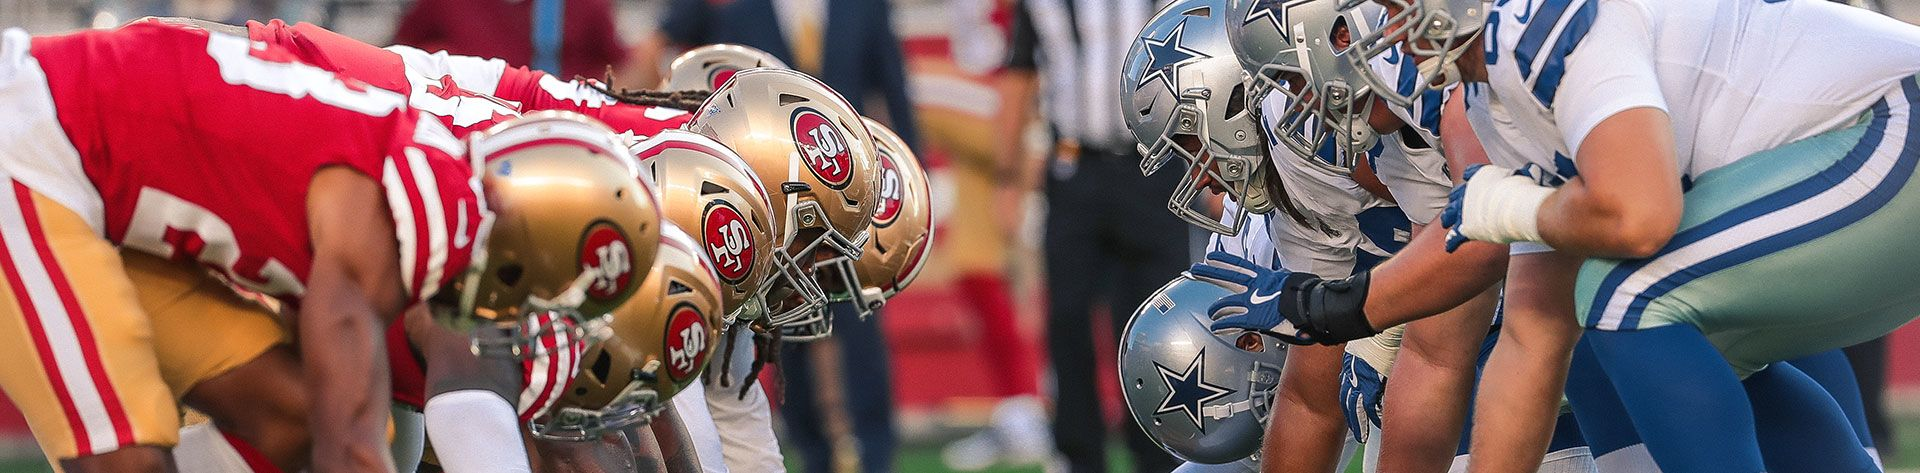 San Francisco 49ers at Dallas Cowboys